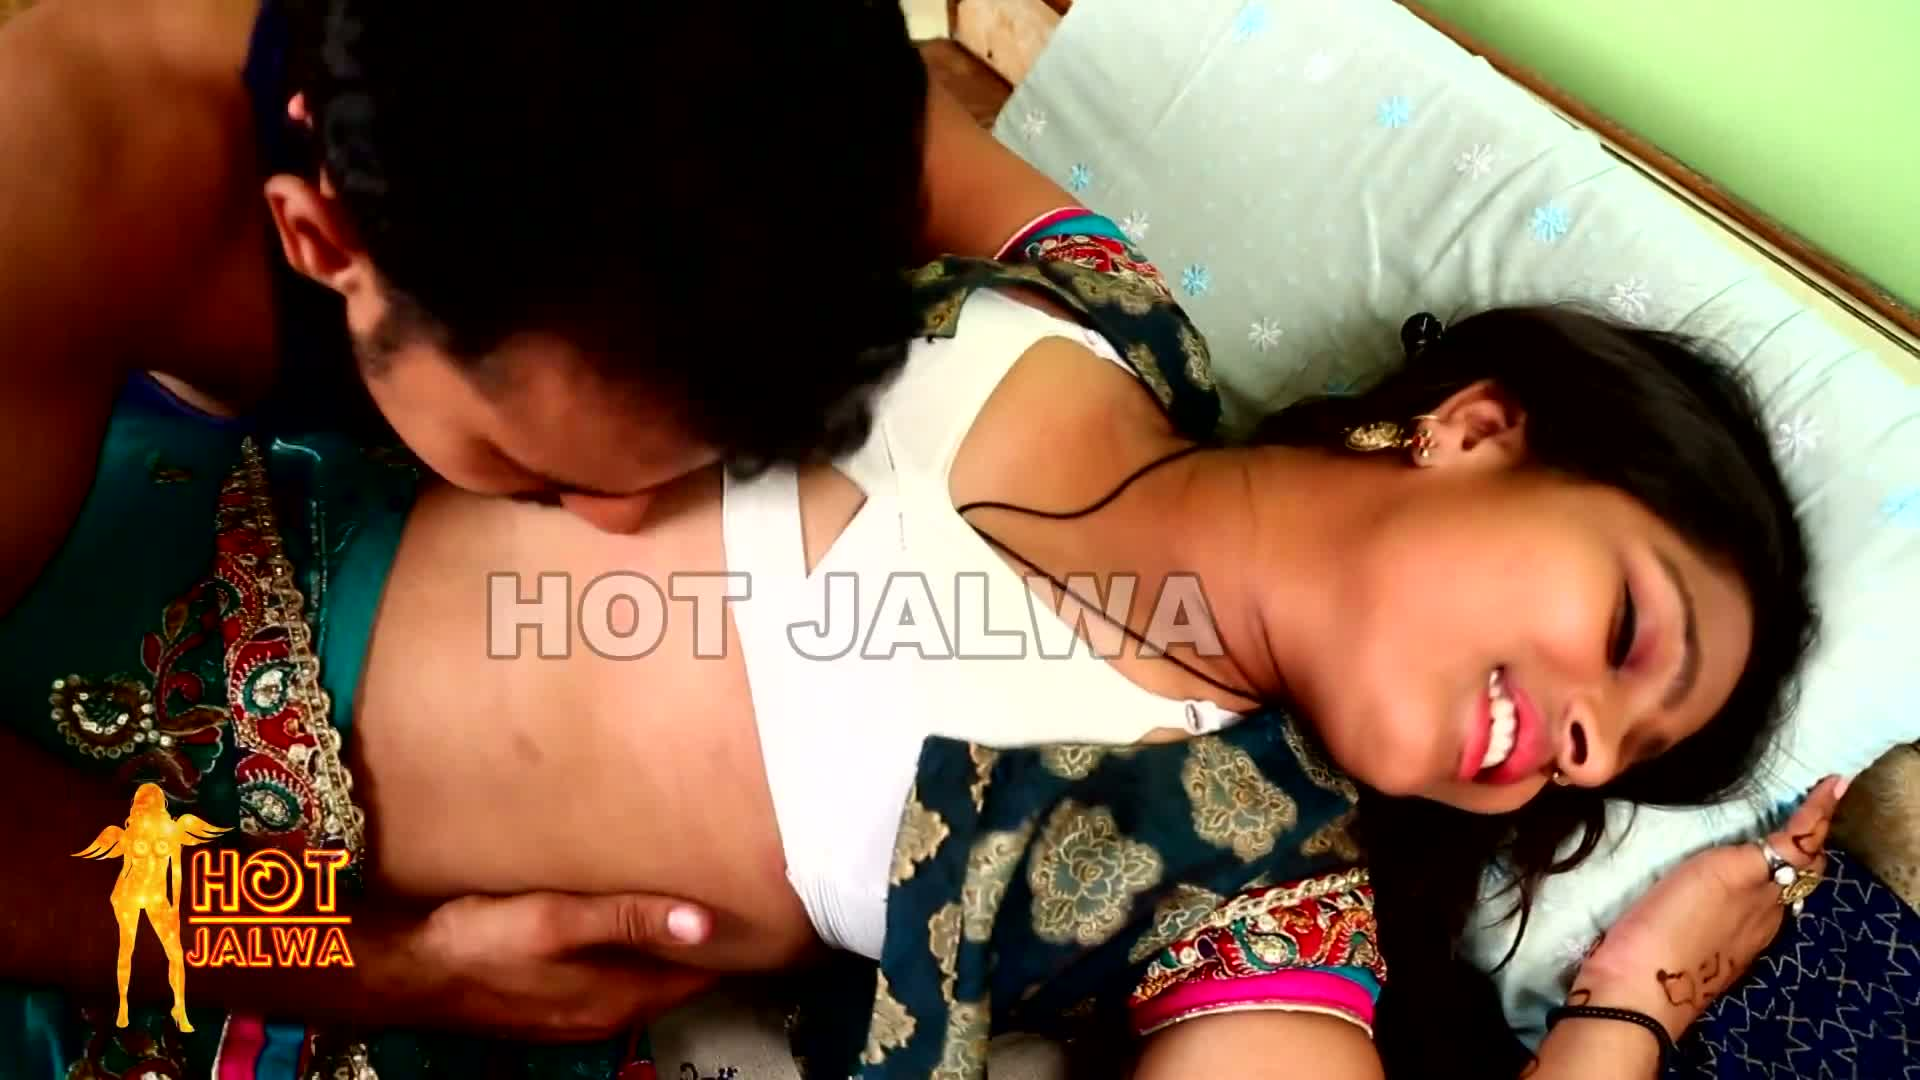 Infian Sex Videos Cool foreplay indian porn videos - indian porn videos